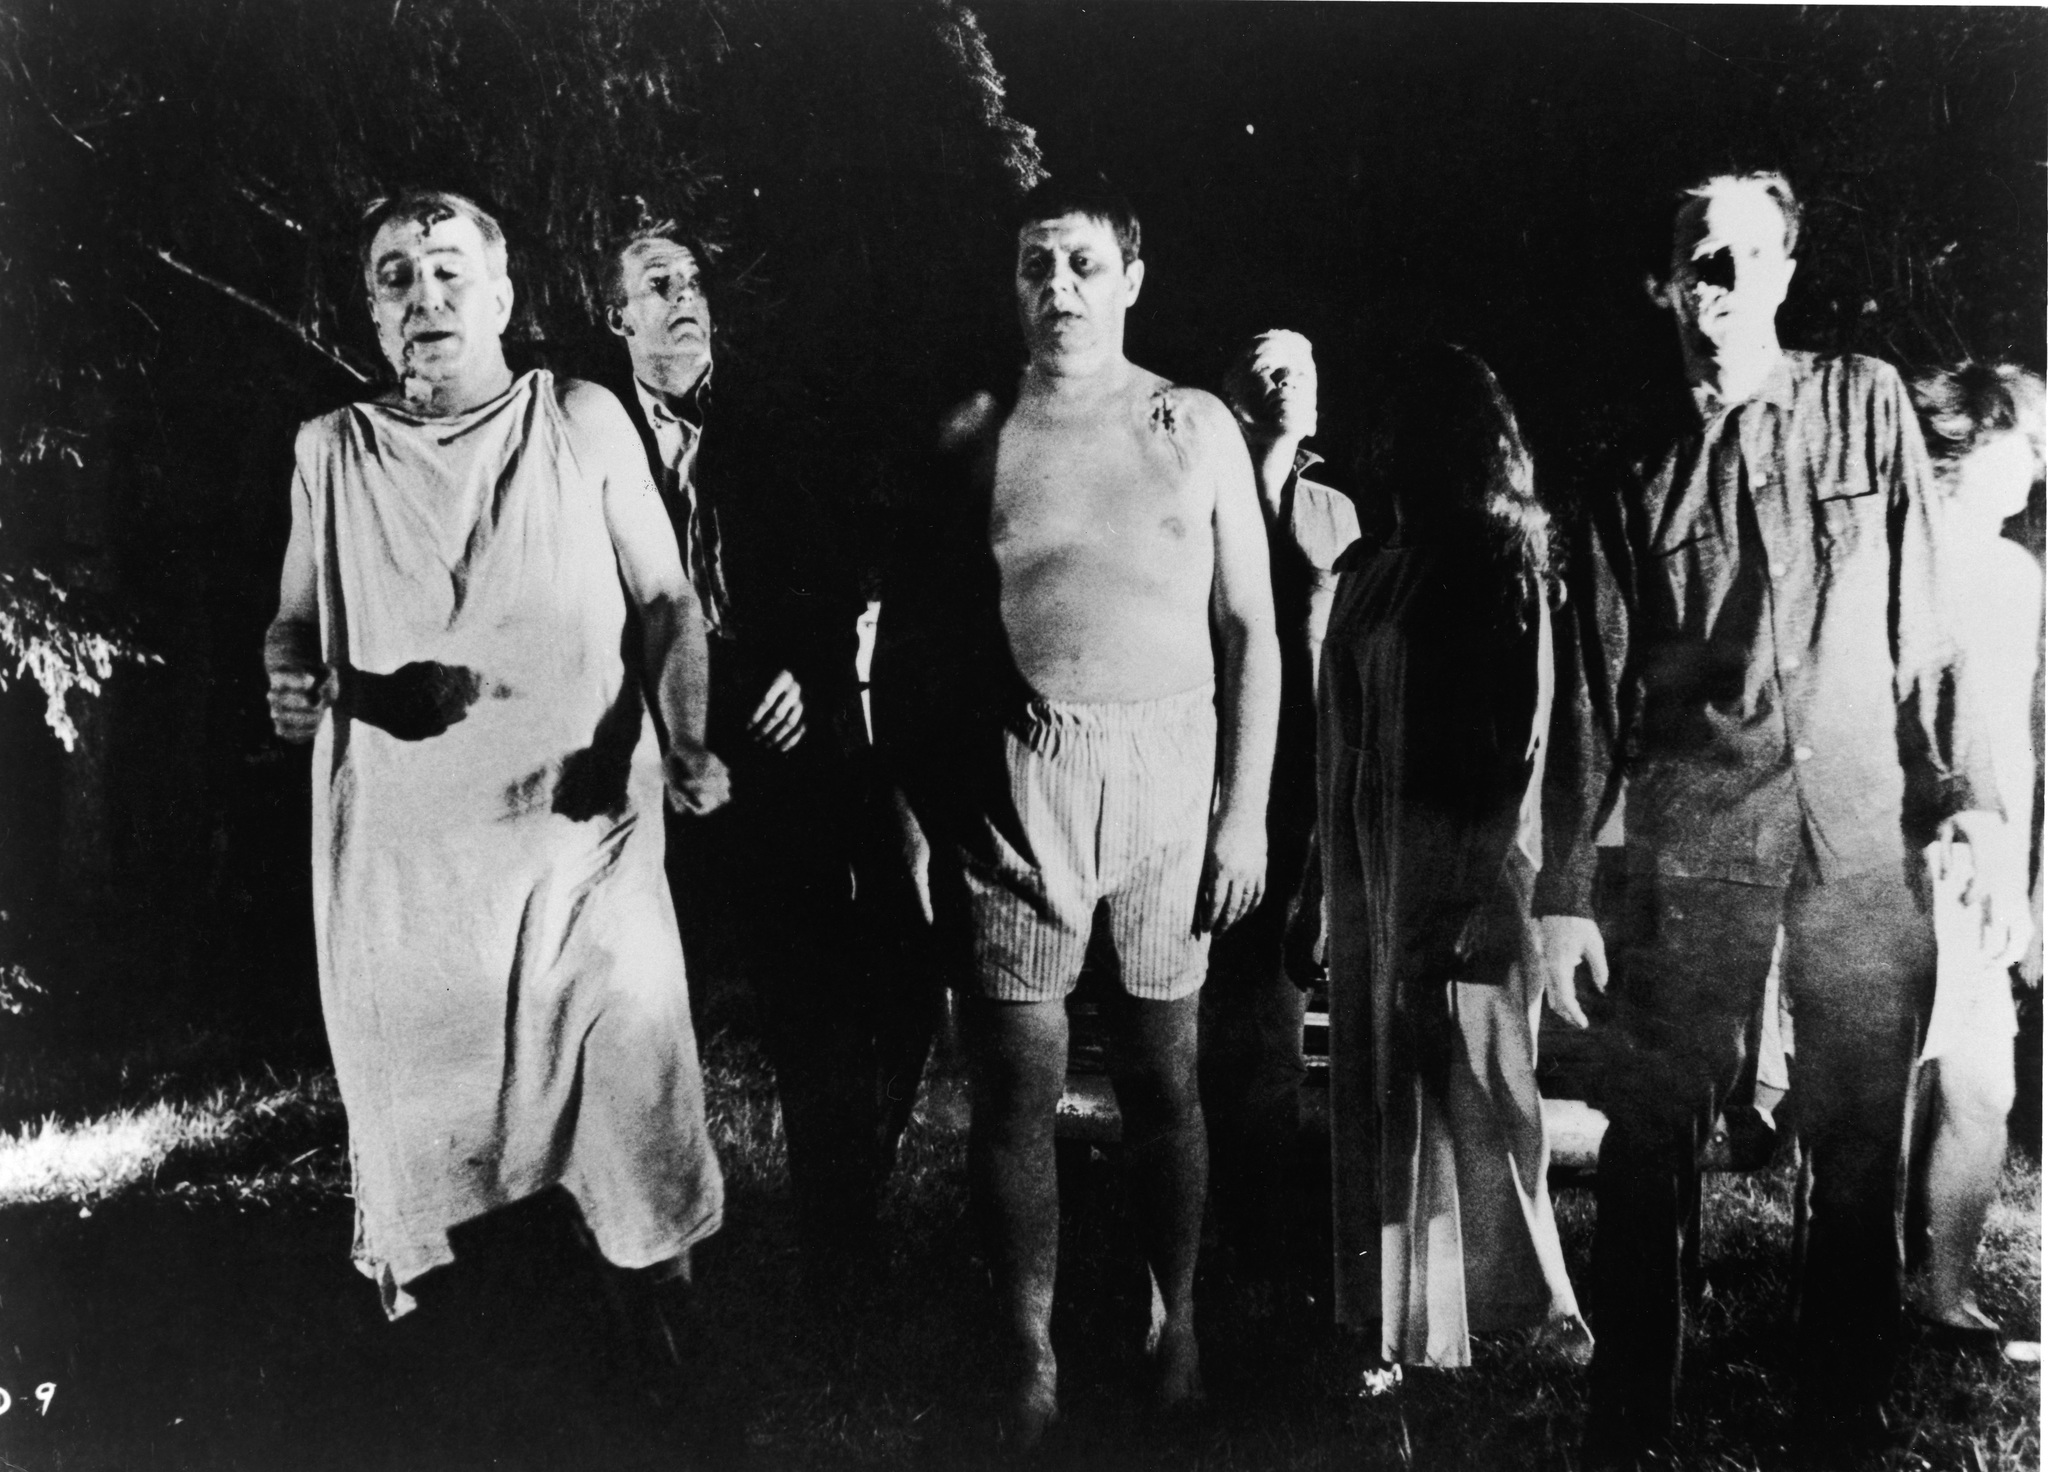 Surprisingly, Night of the Living Dead is public domain